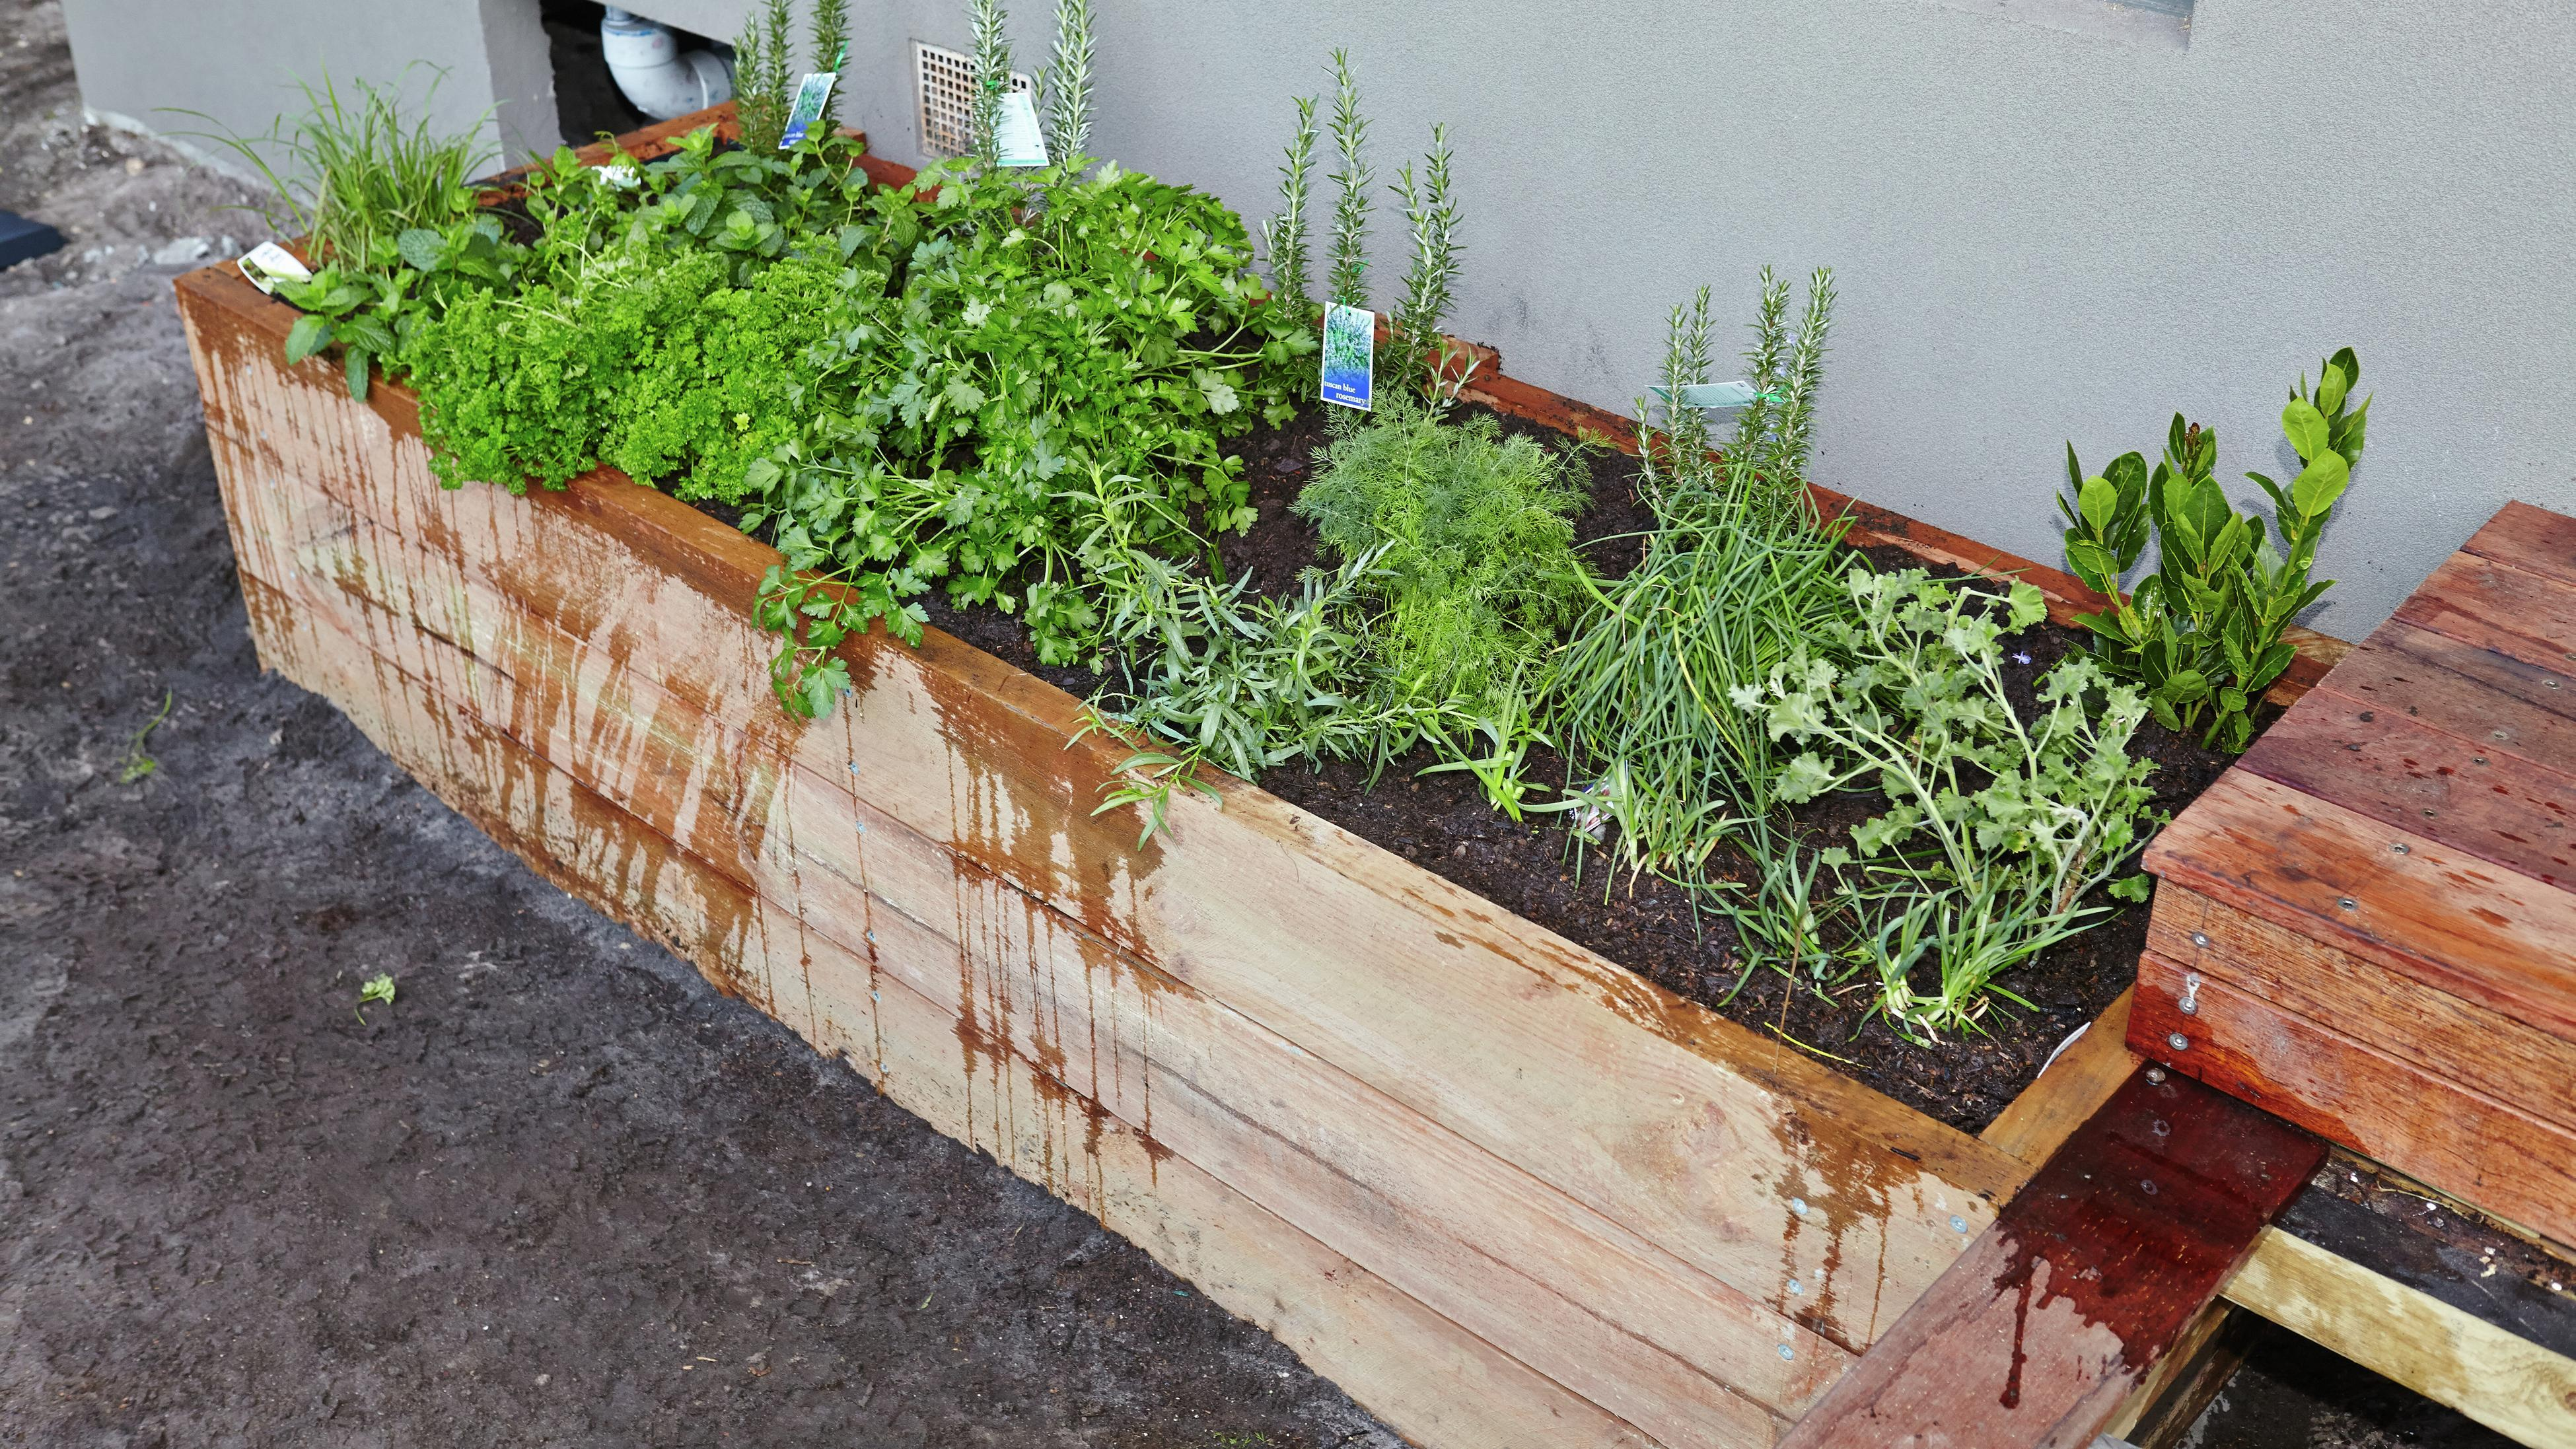 Raised garden bed with herbs.